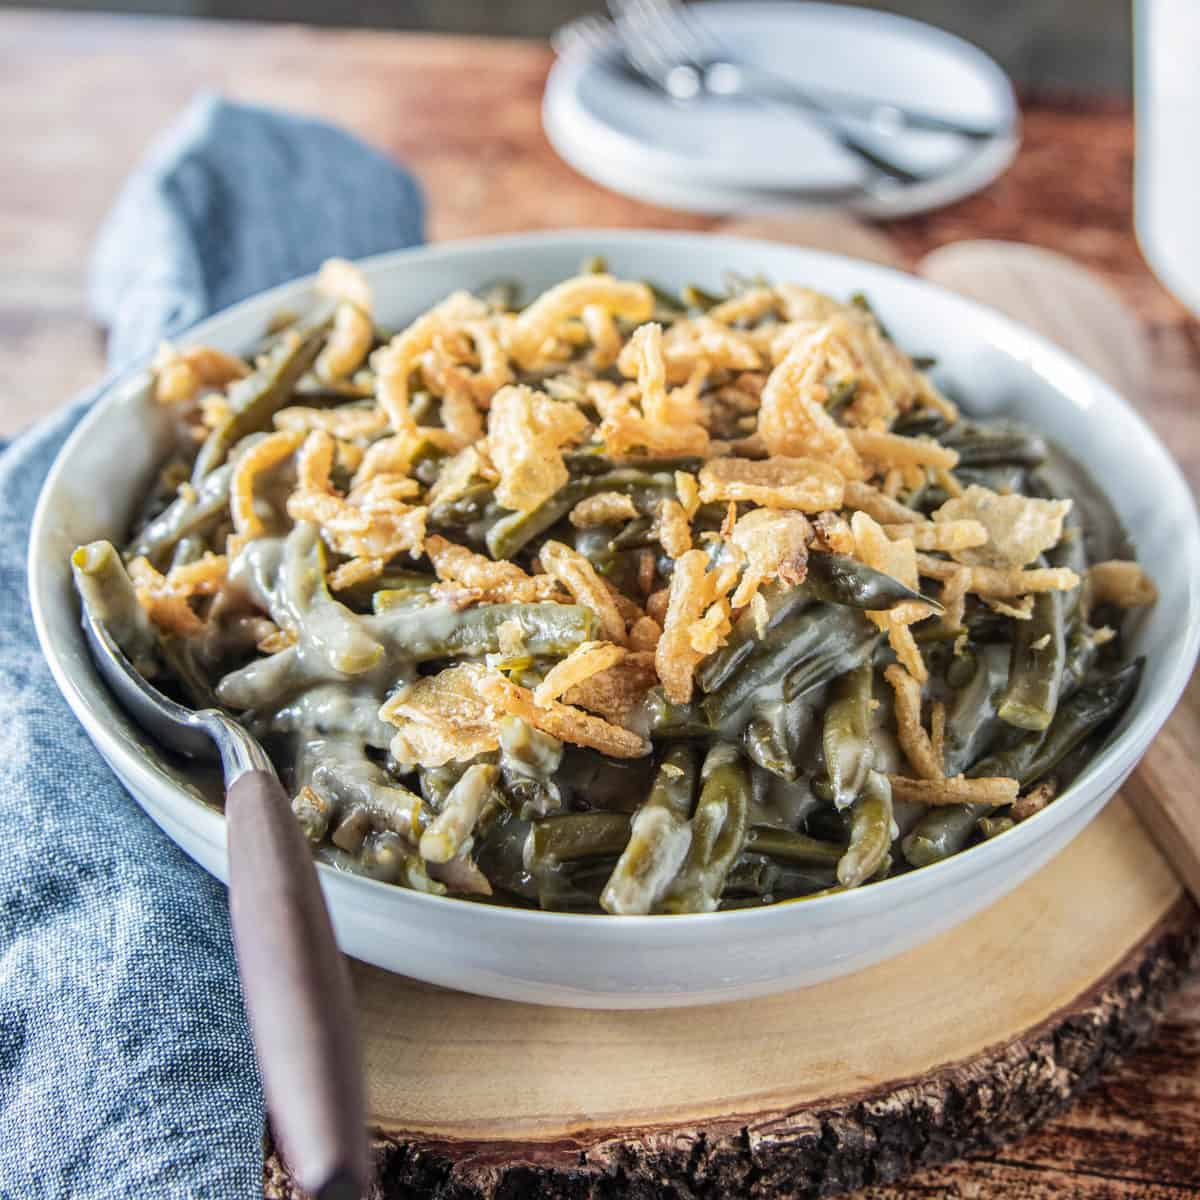 A bowl of green bean casserole.